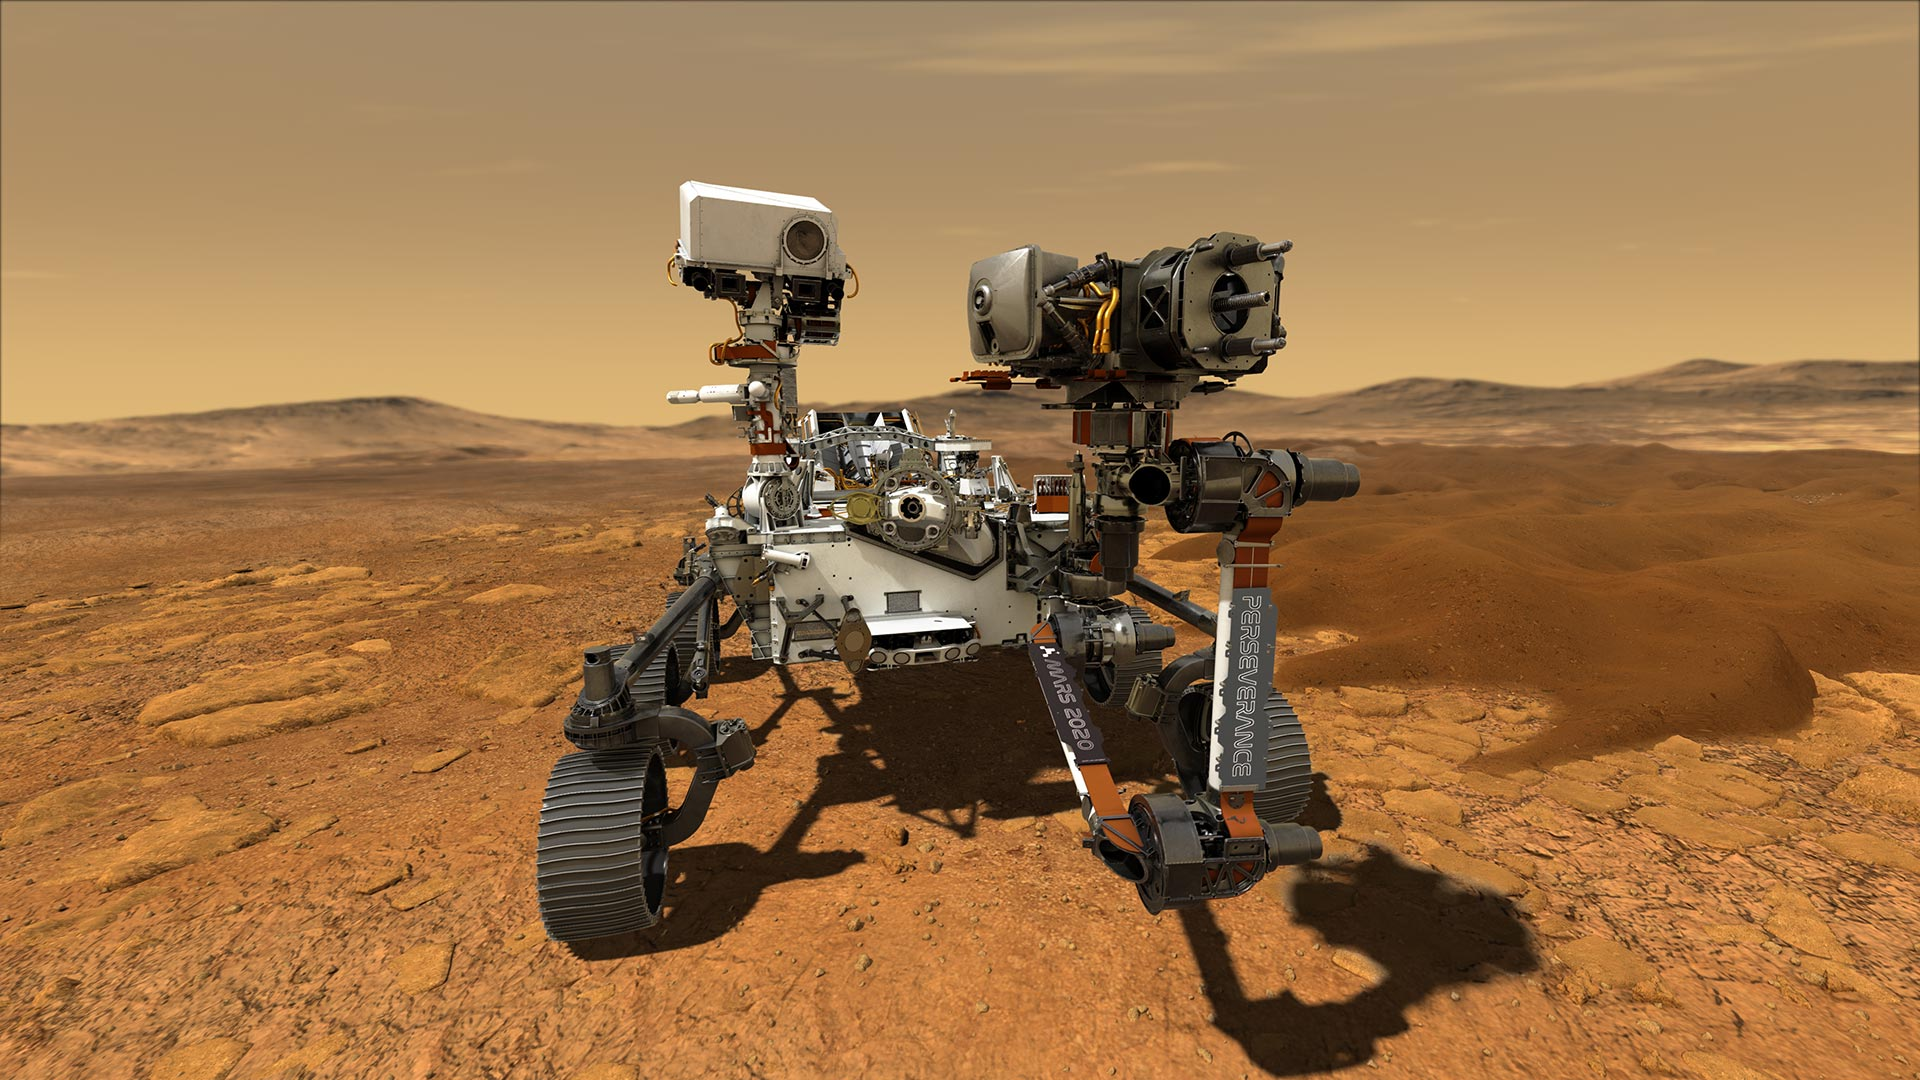 NASA's Mars 2020 Perseverance Rover Will Launch in Less Than a Month – 7 Things to Know - SciTechDaily